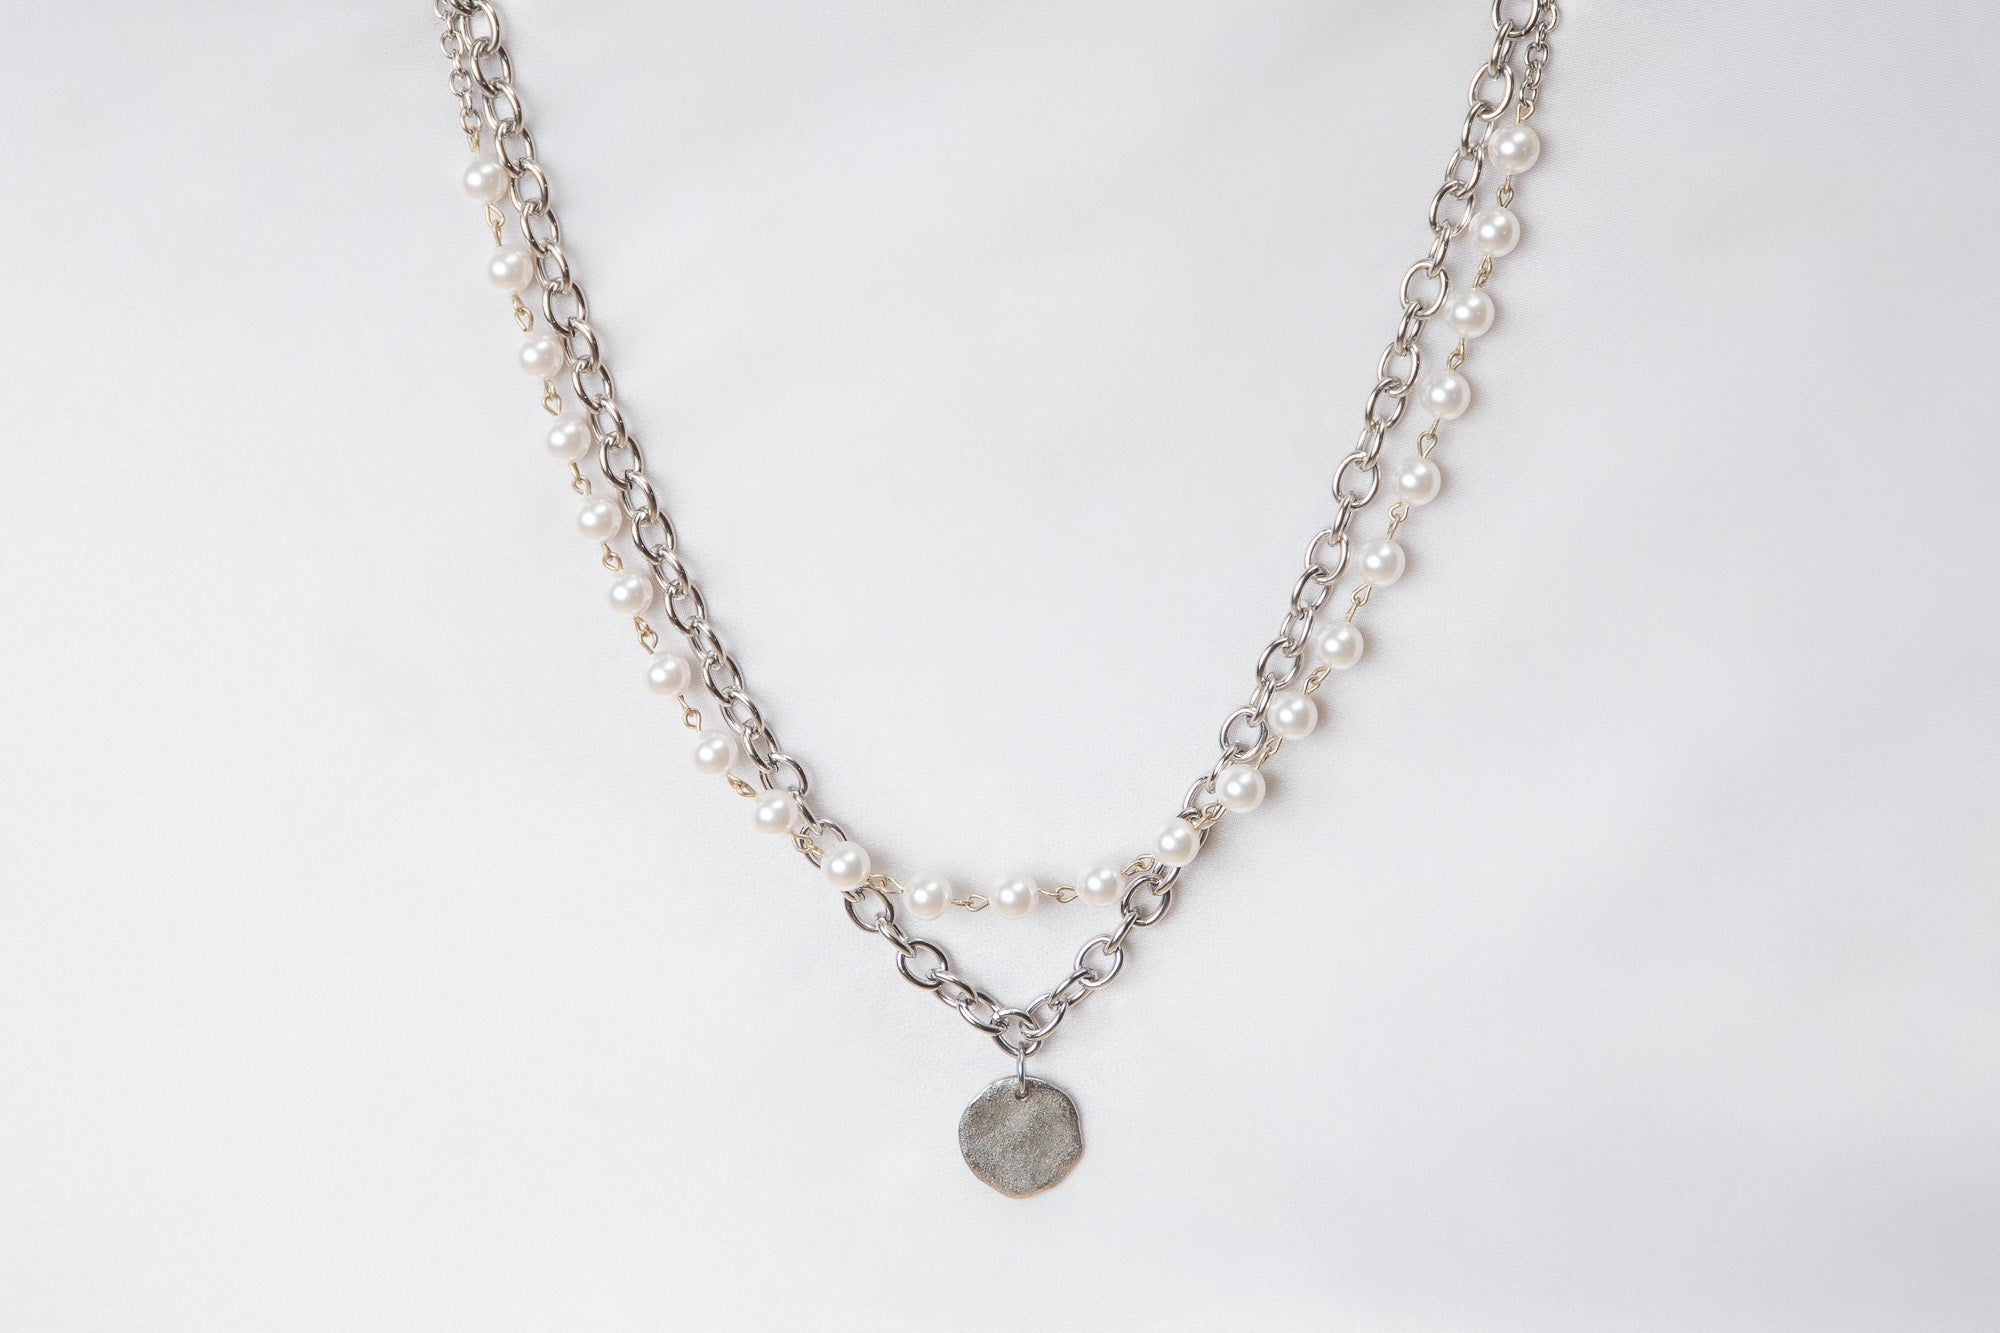 a Carolily Finery statement necklace made from Swarovski crystal pearls, stainless steel chain and a sterling silver coin